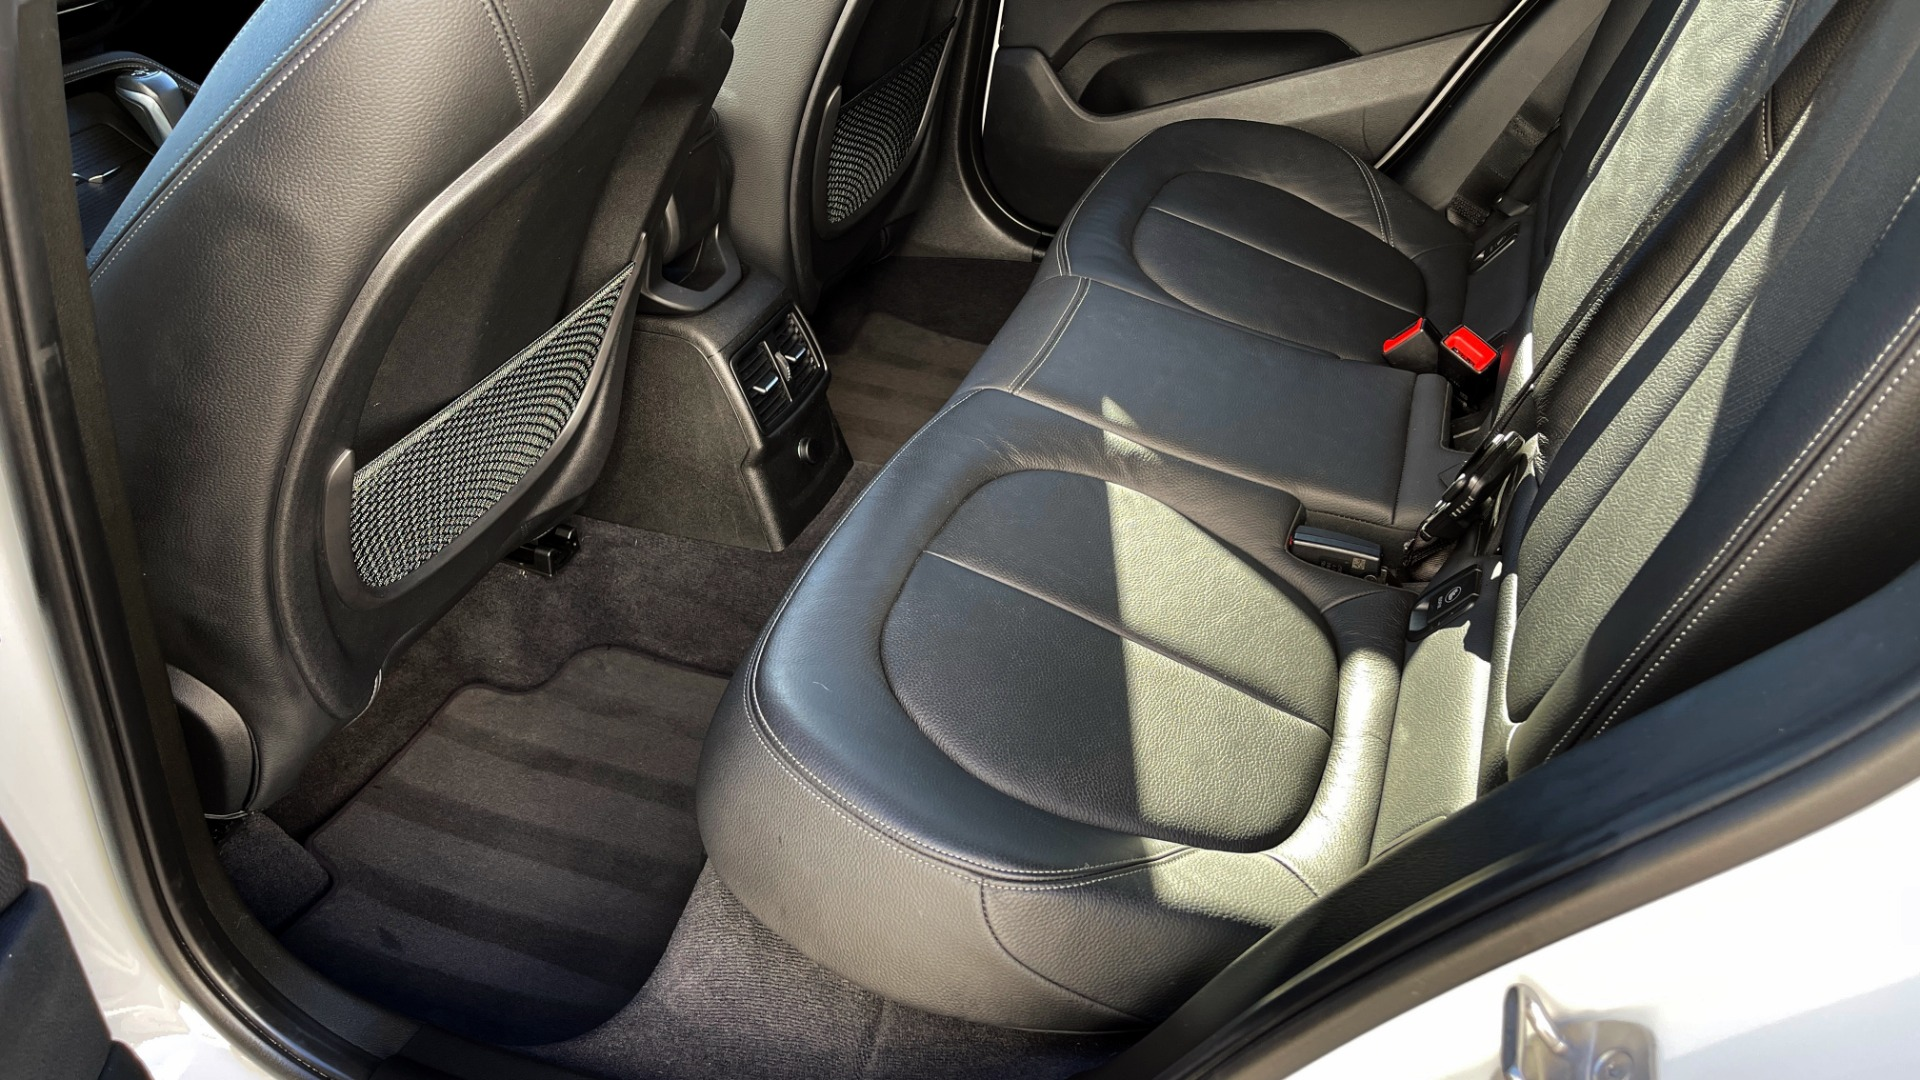 Used 2018 BMW X1 XDRIVE28I / CONV PKG / PANO-ROOF / PARK ASST / REARVIEW for sale $31,995 at Formula Imports in Charlotte NC 28227 44